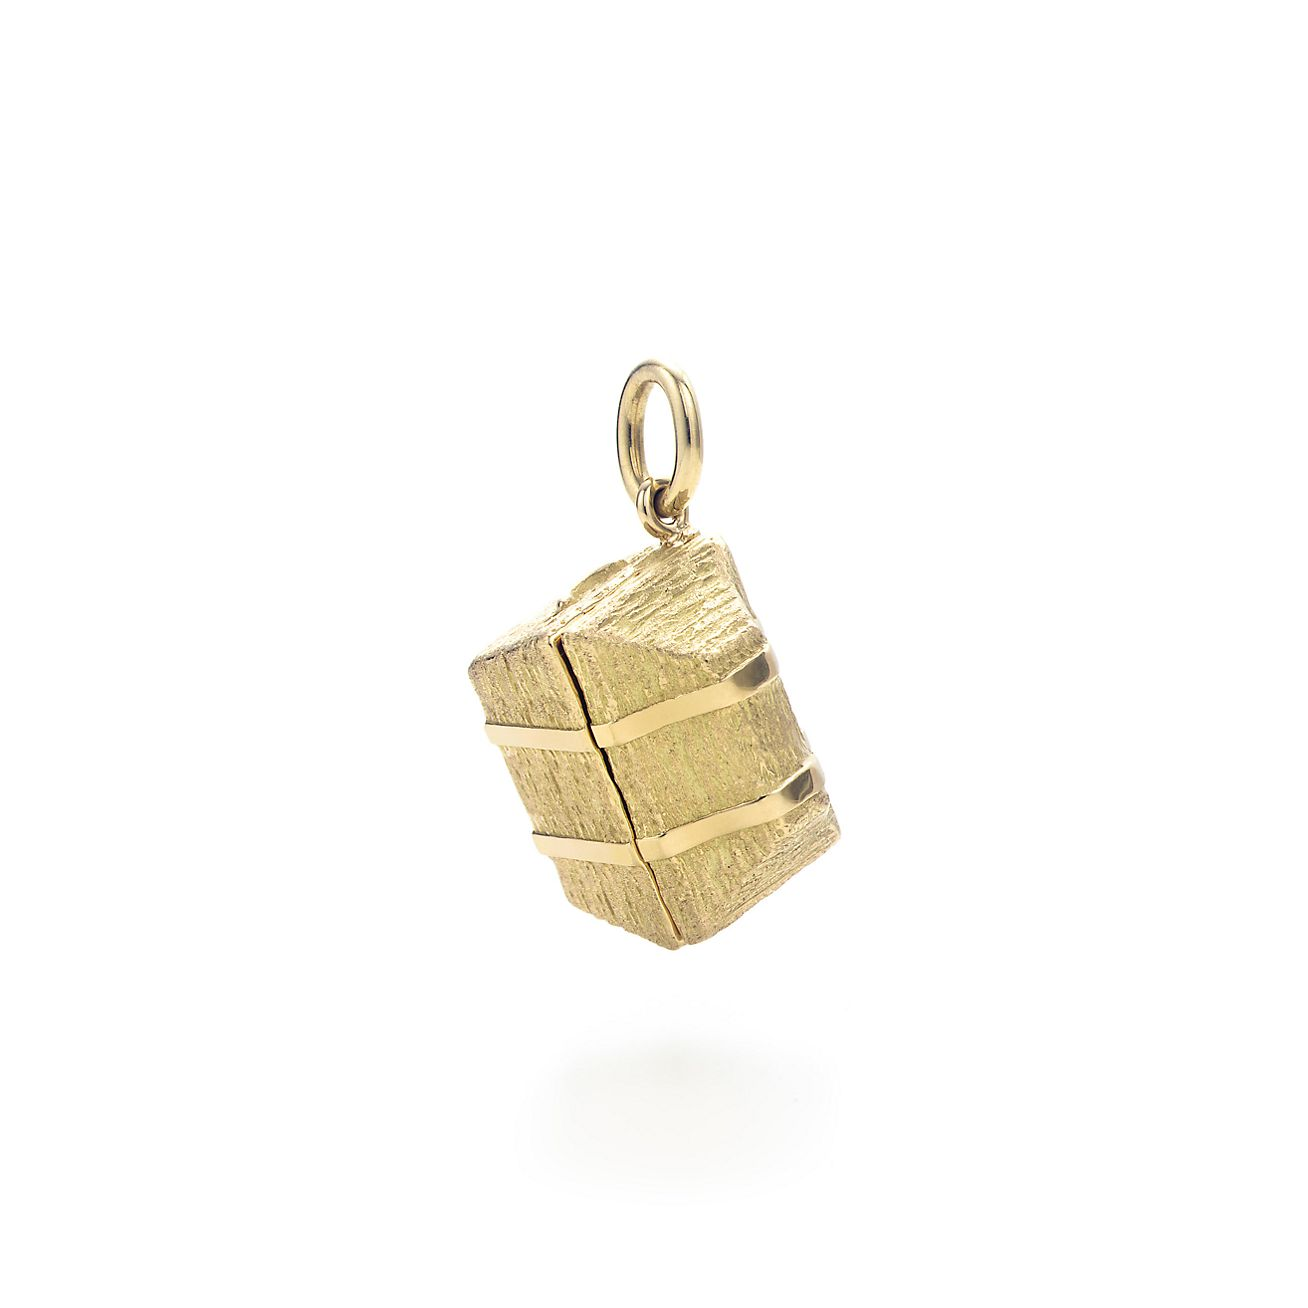 treasure chest charm 18k gold colored gemstones